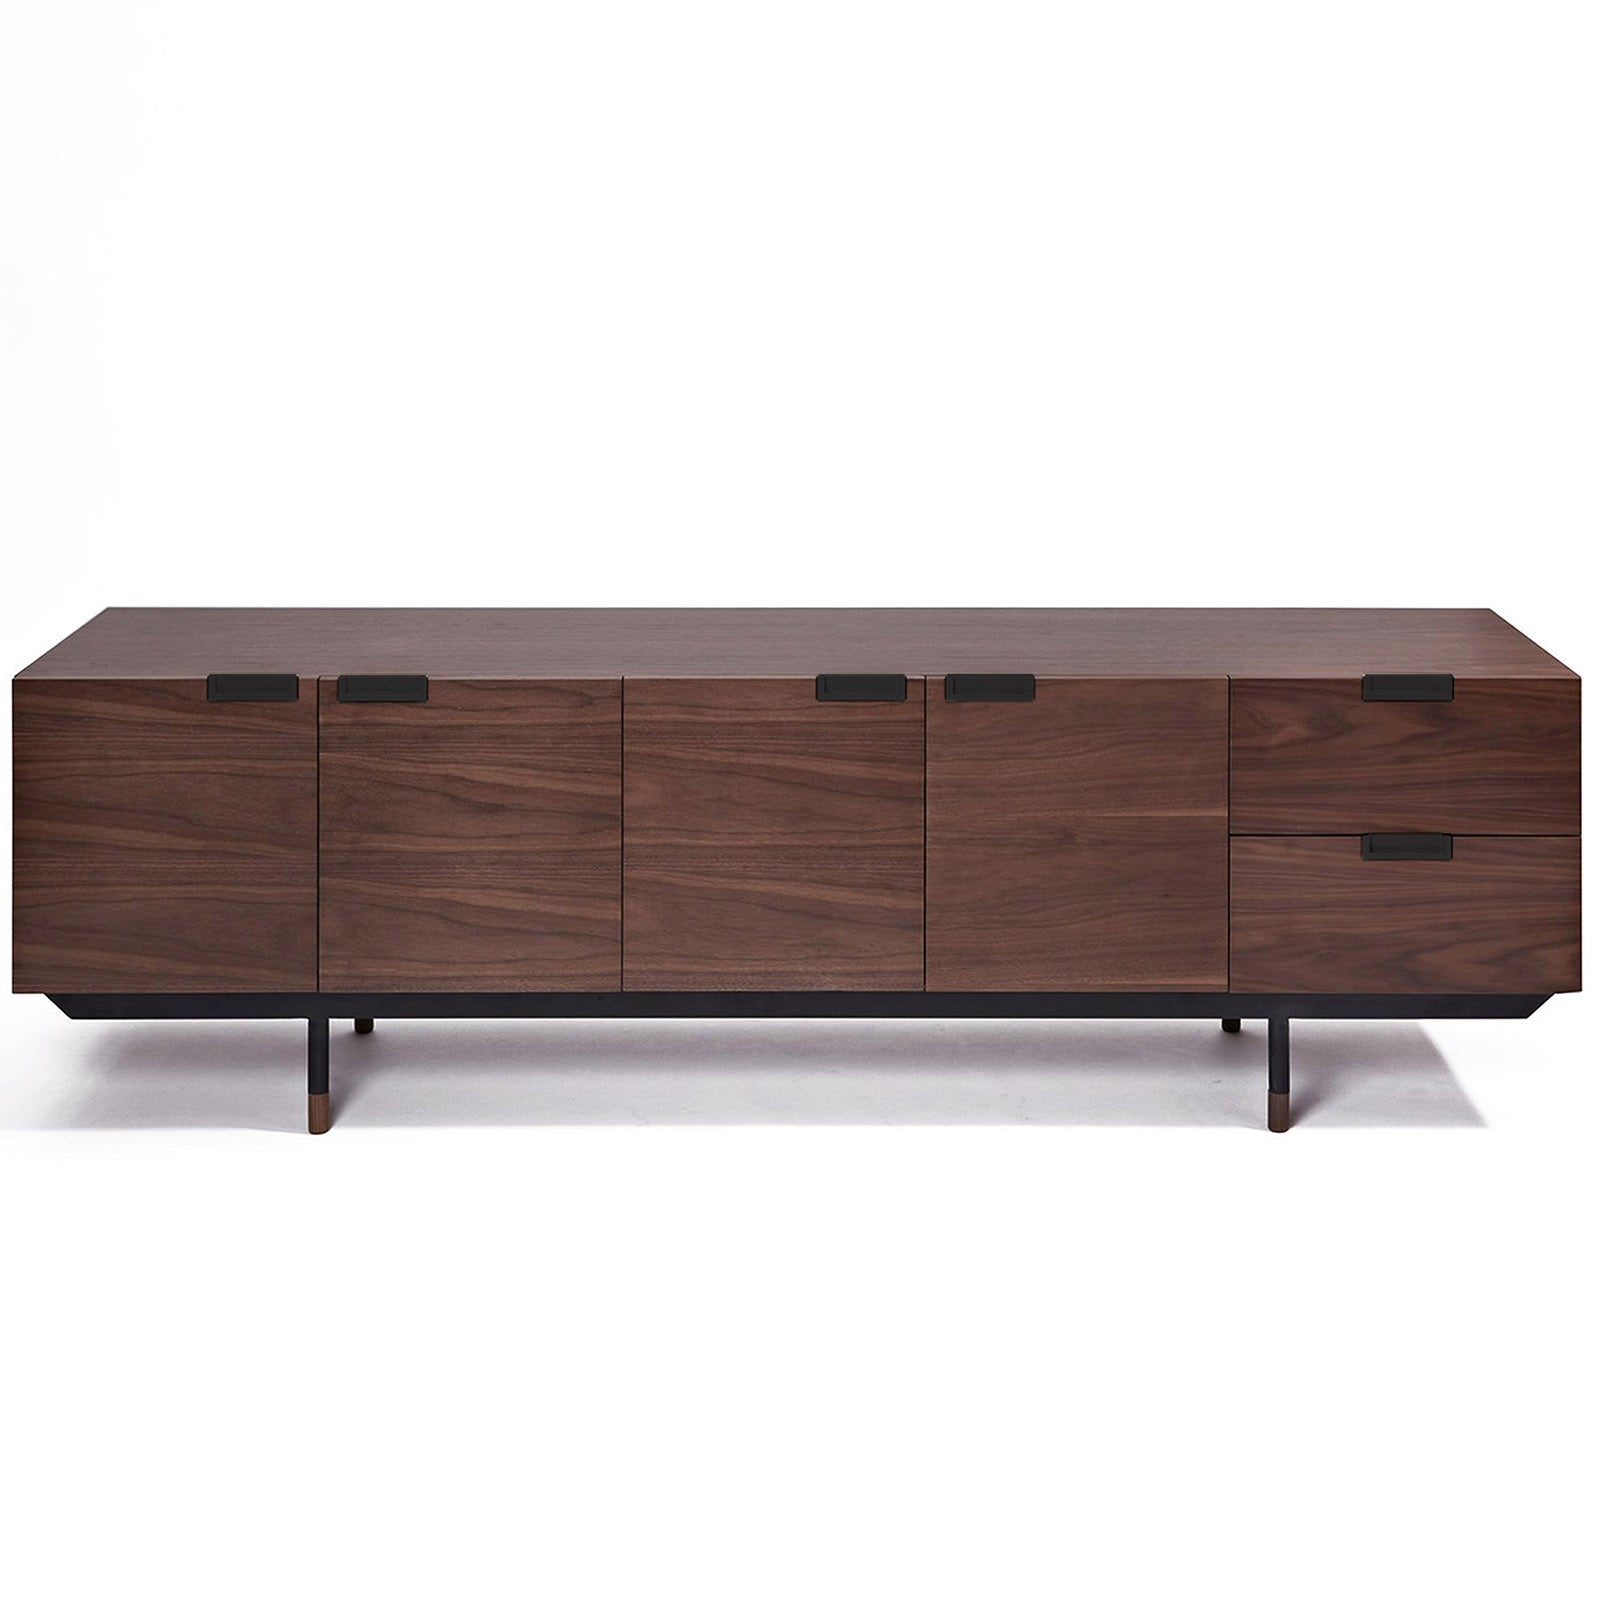 Pre-Order 60 days delivery  Monaco 190cm TV unit/cabinet BSG16228